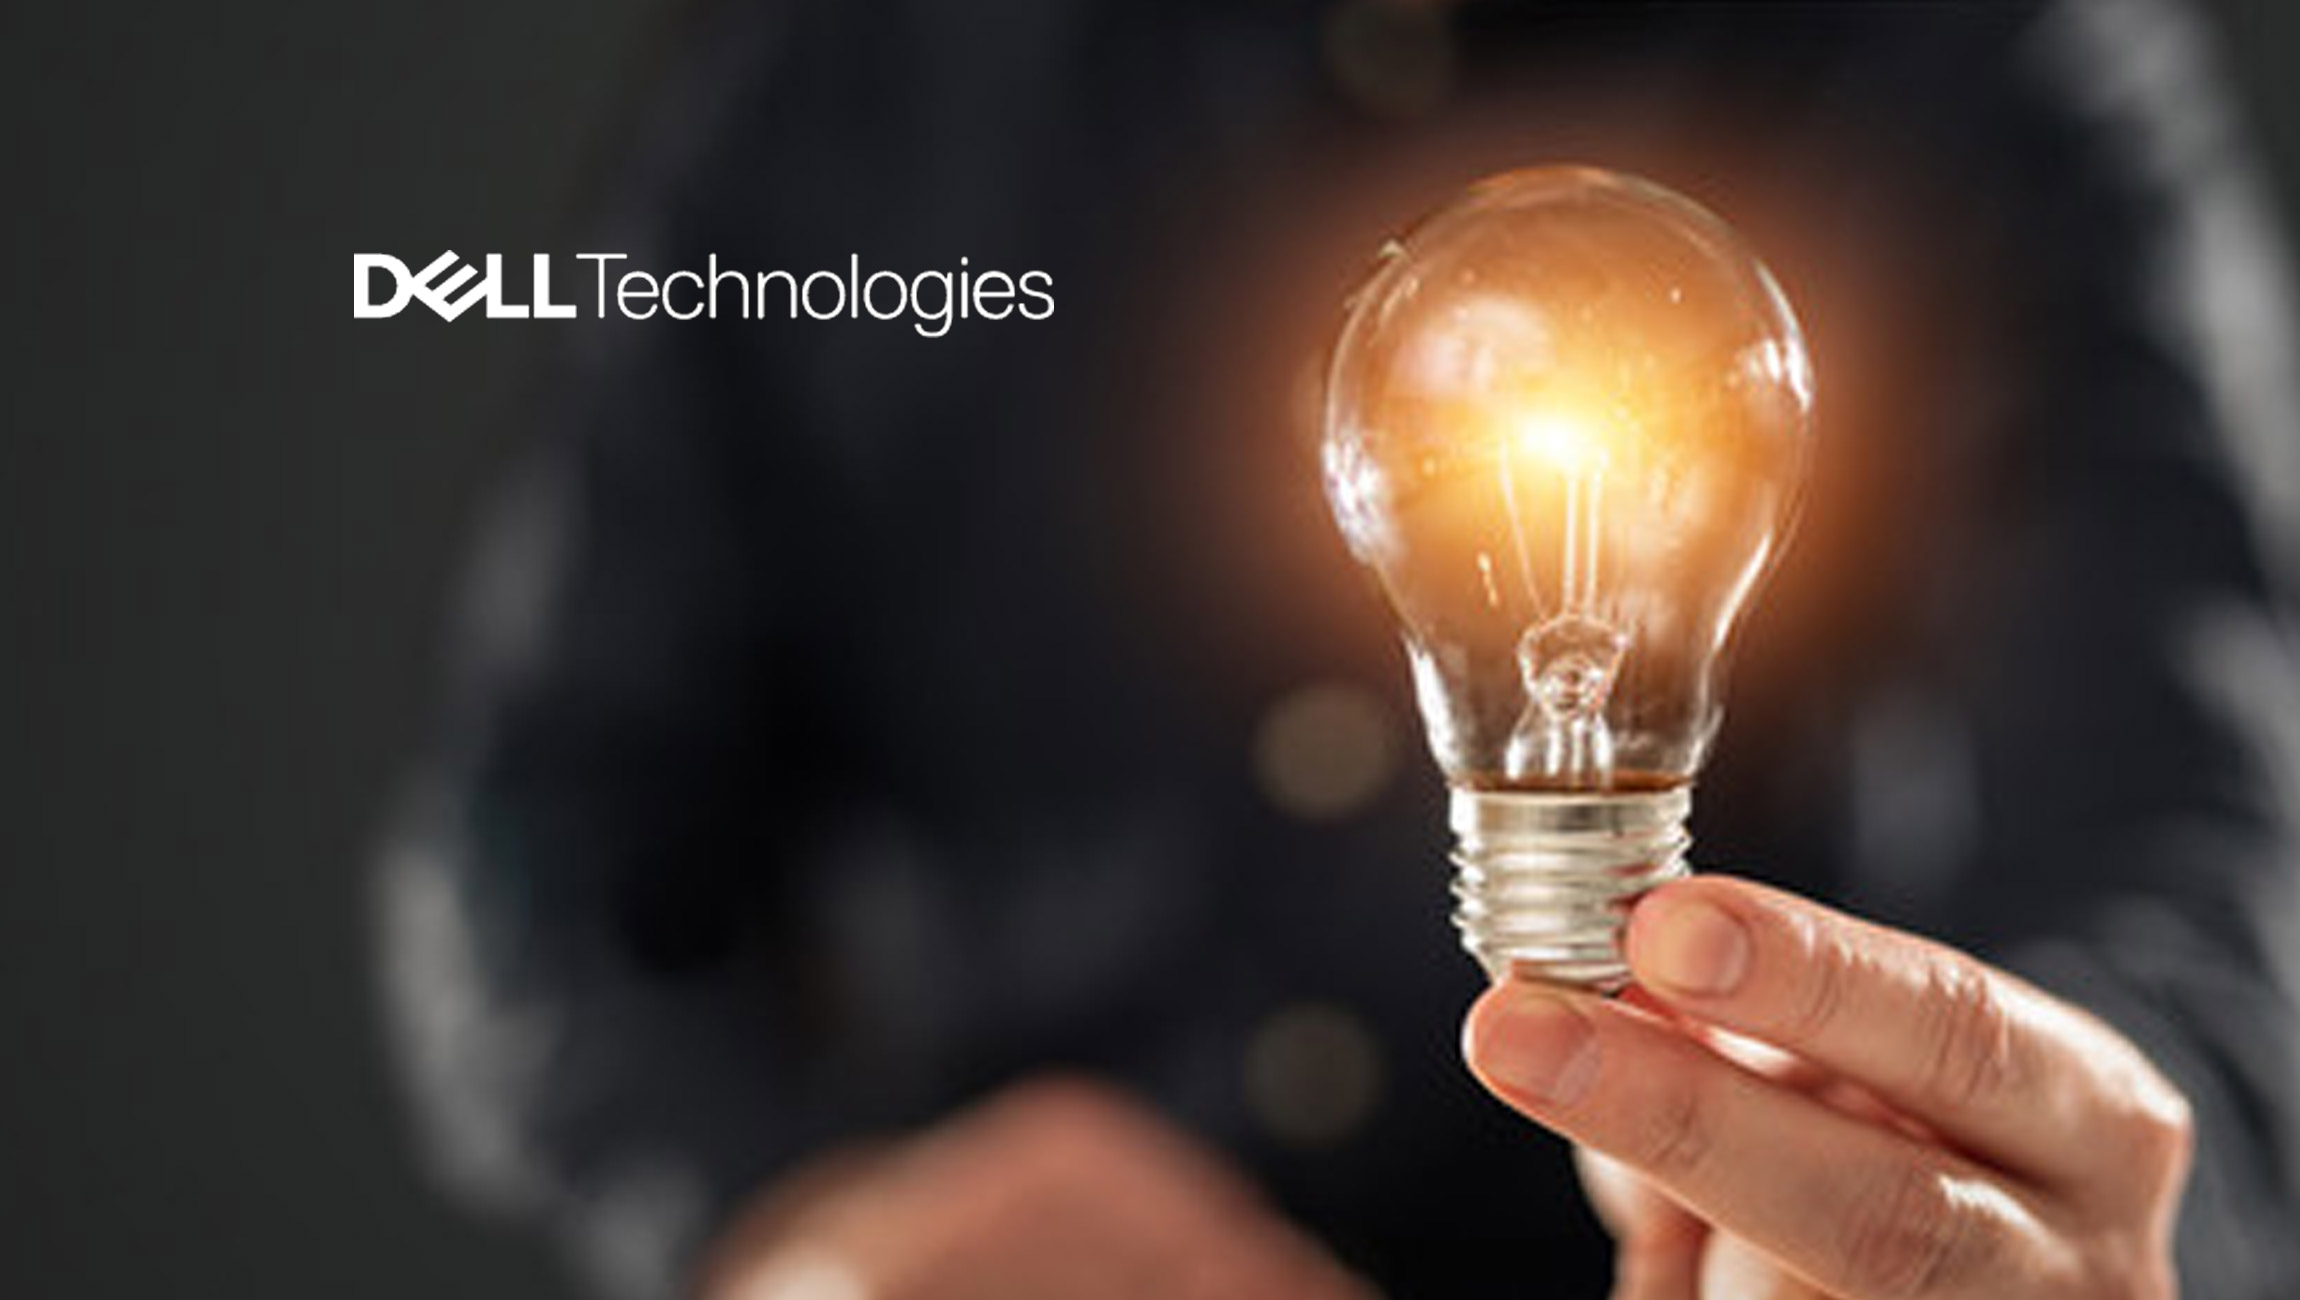 Dell Technologies Announces Planned VMware Spin-Off